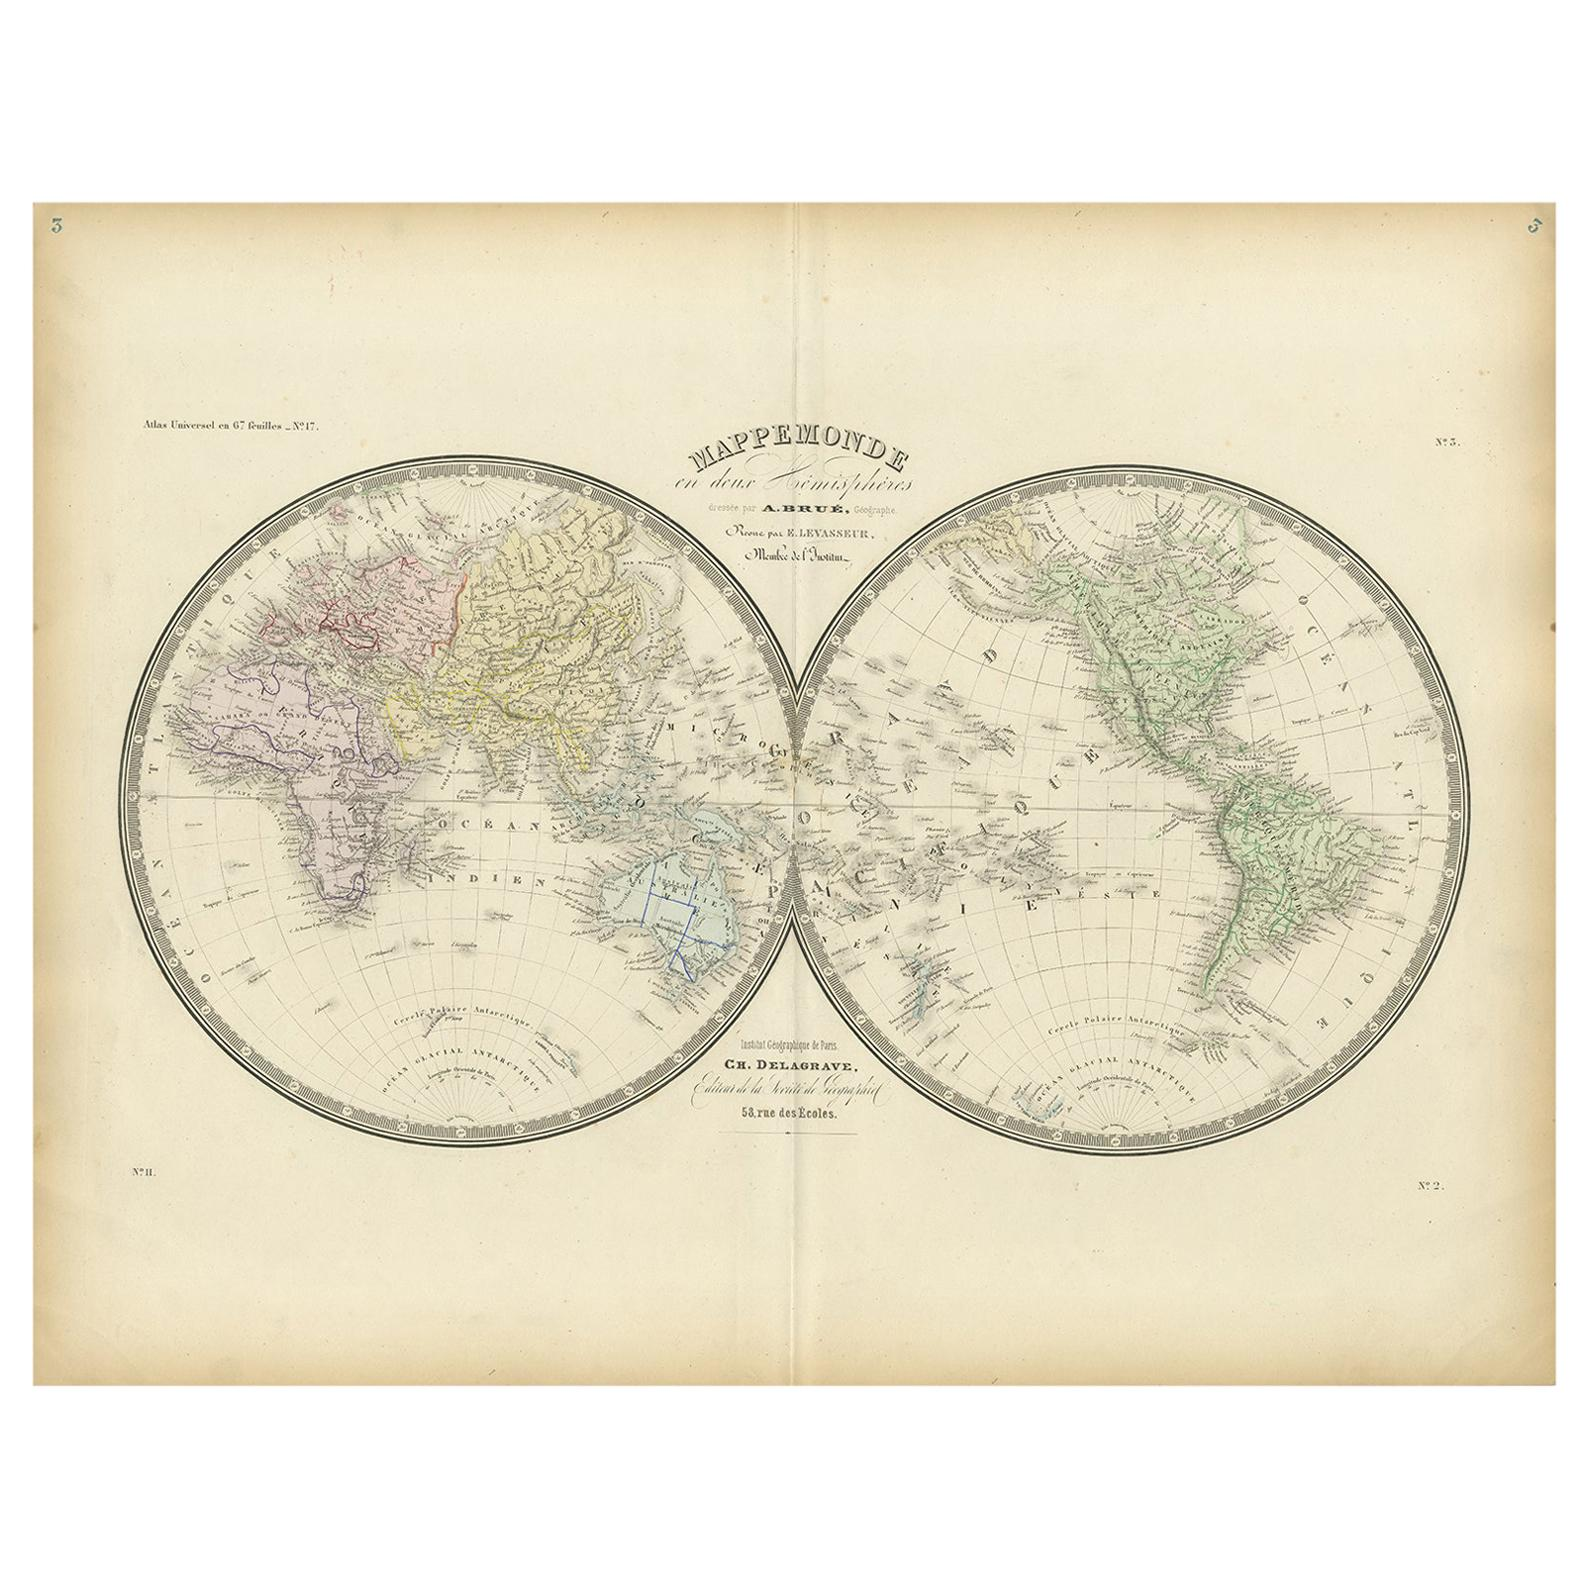 Antique Hemisphere Map of the World by Levasseur, 1875